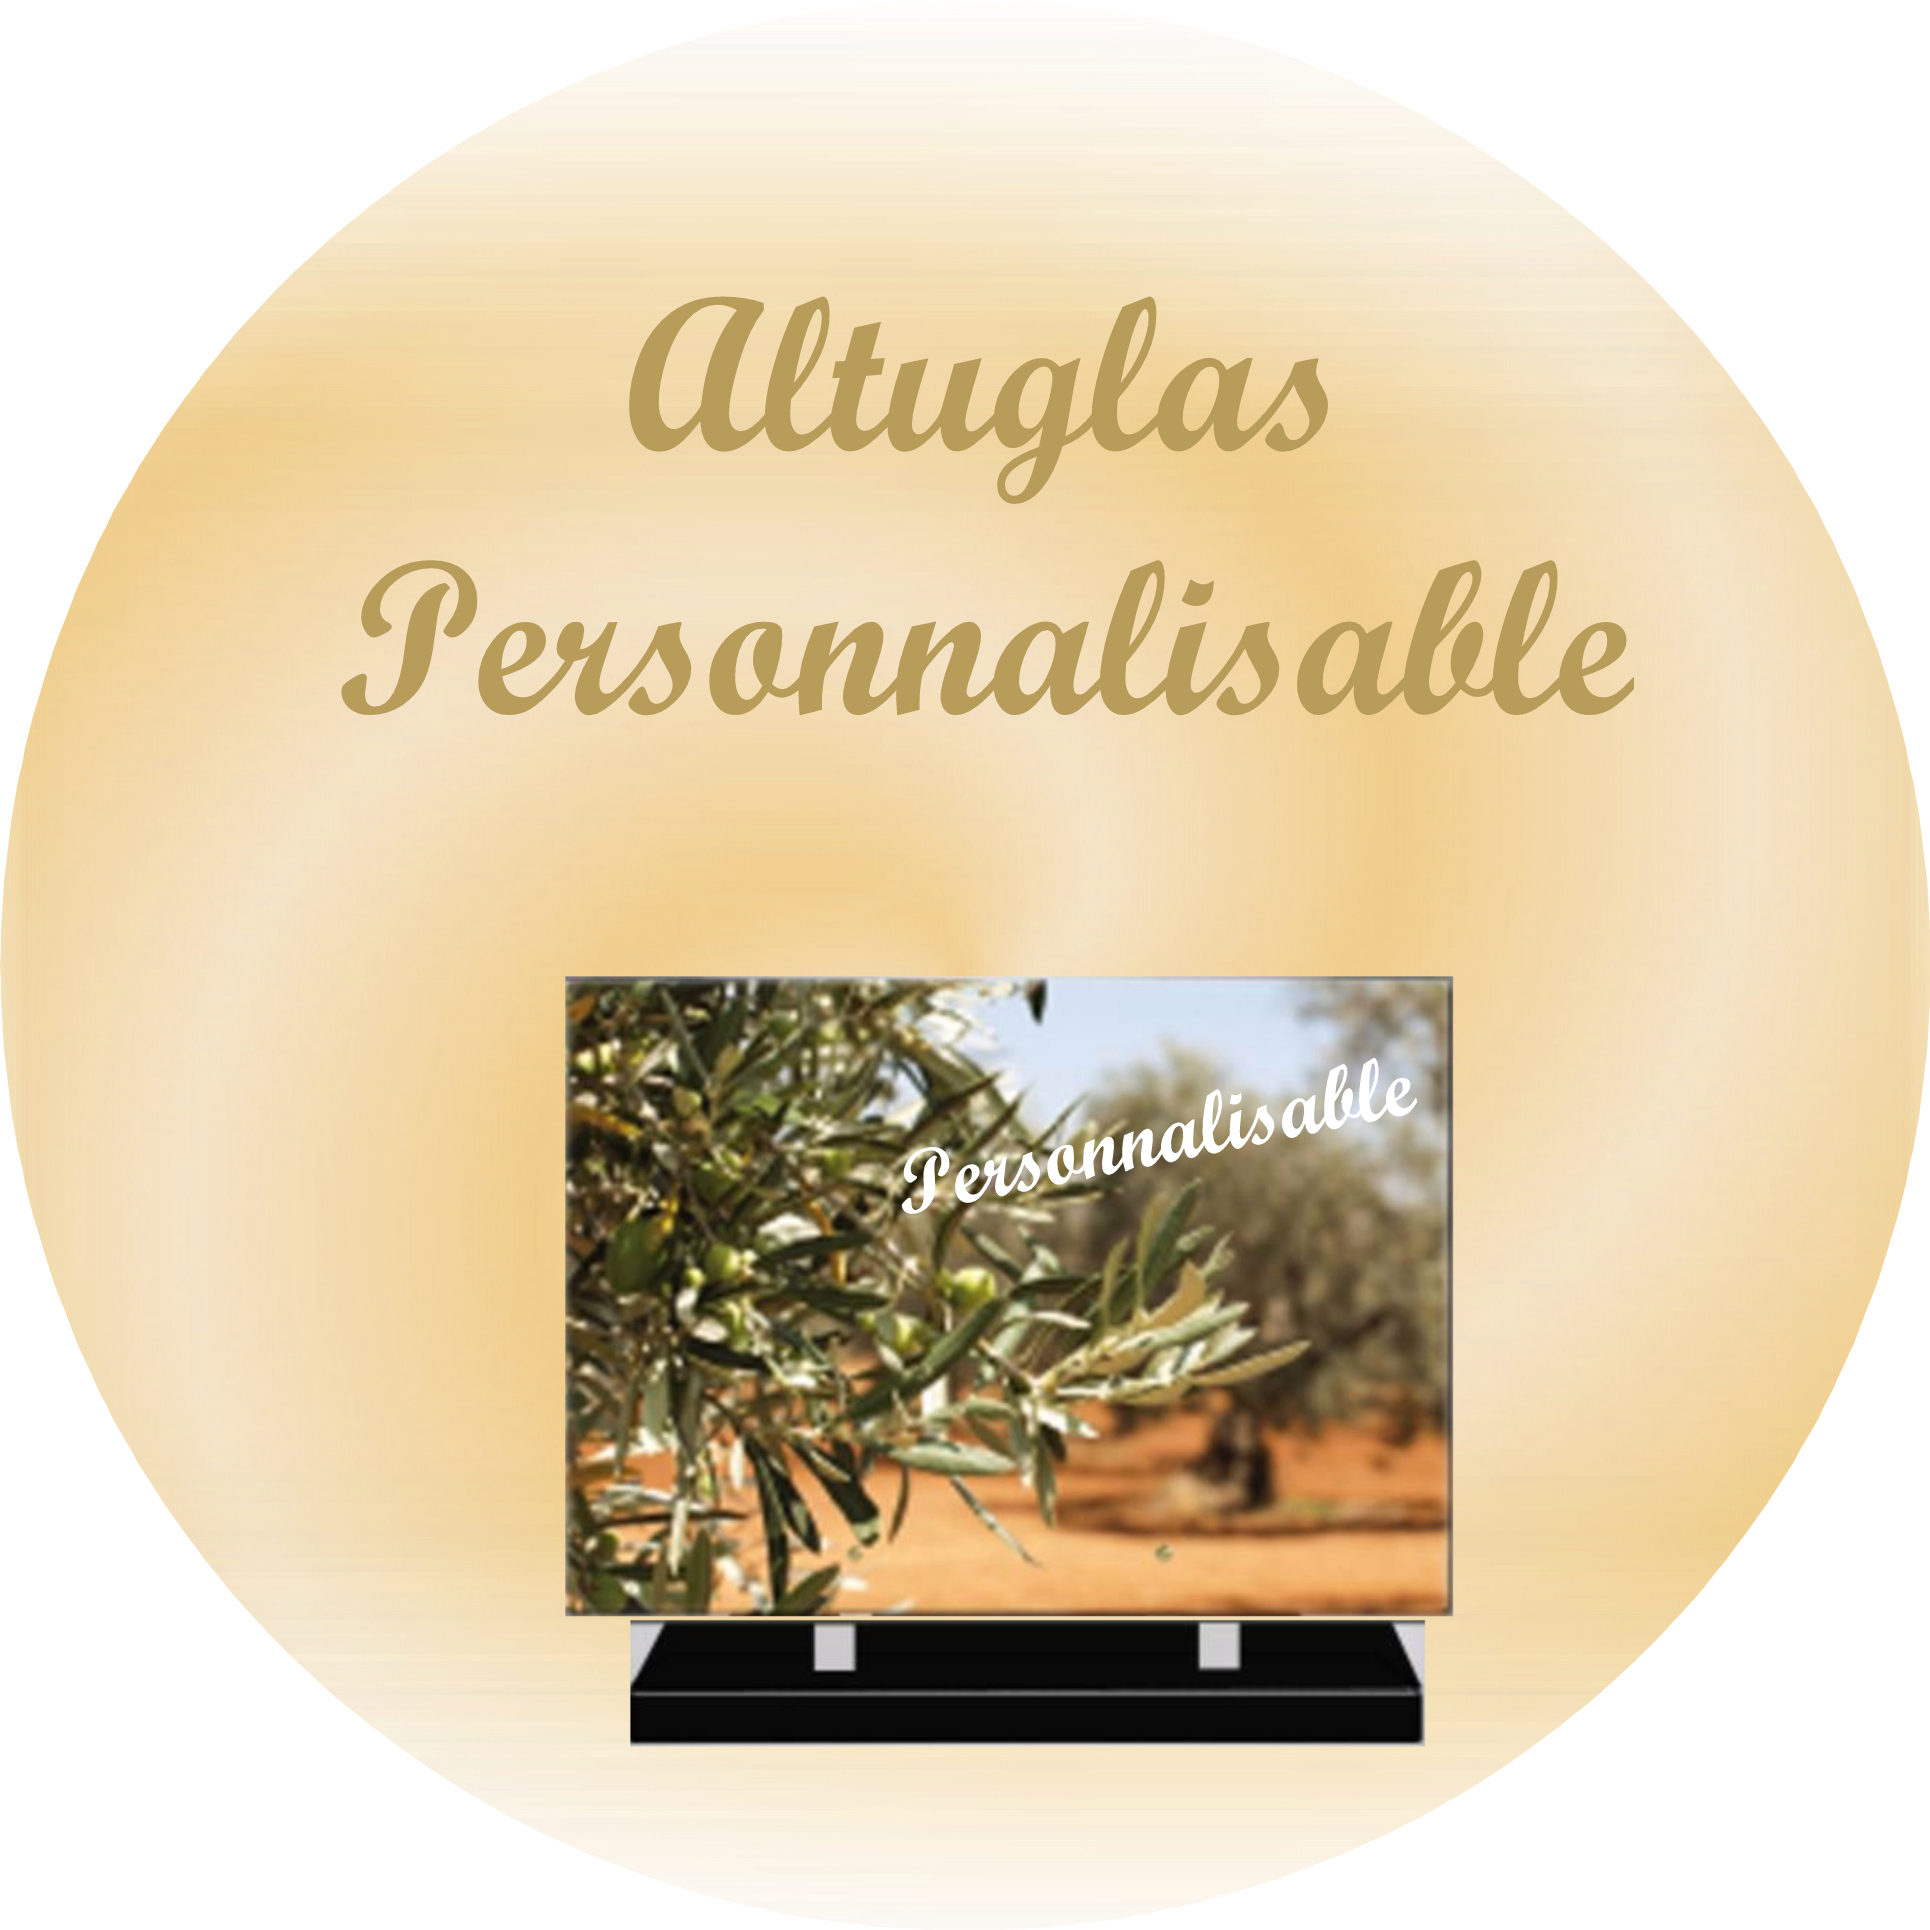 PLAQUES FUNERAIRES MODERNES PERSONNALISABLES RECTANGLE ANGRES